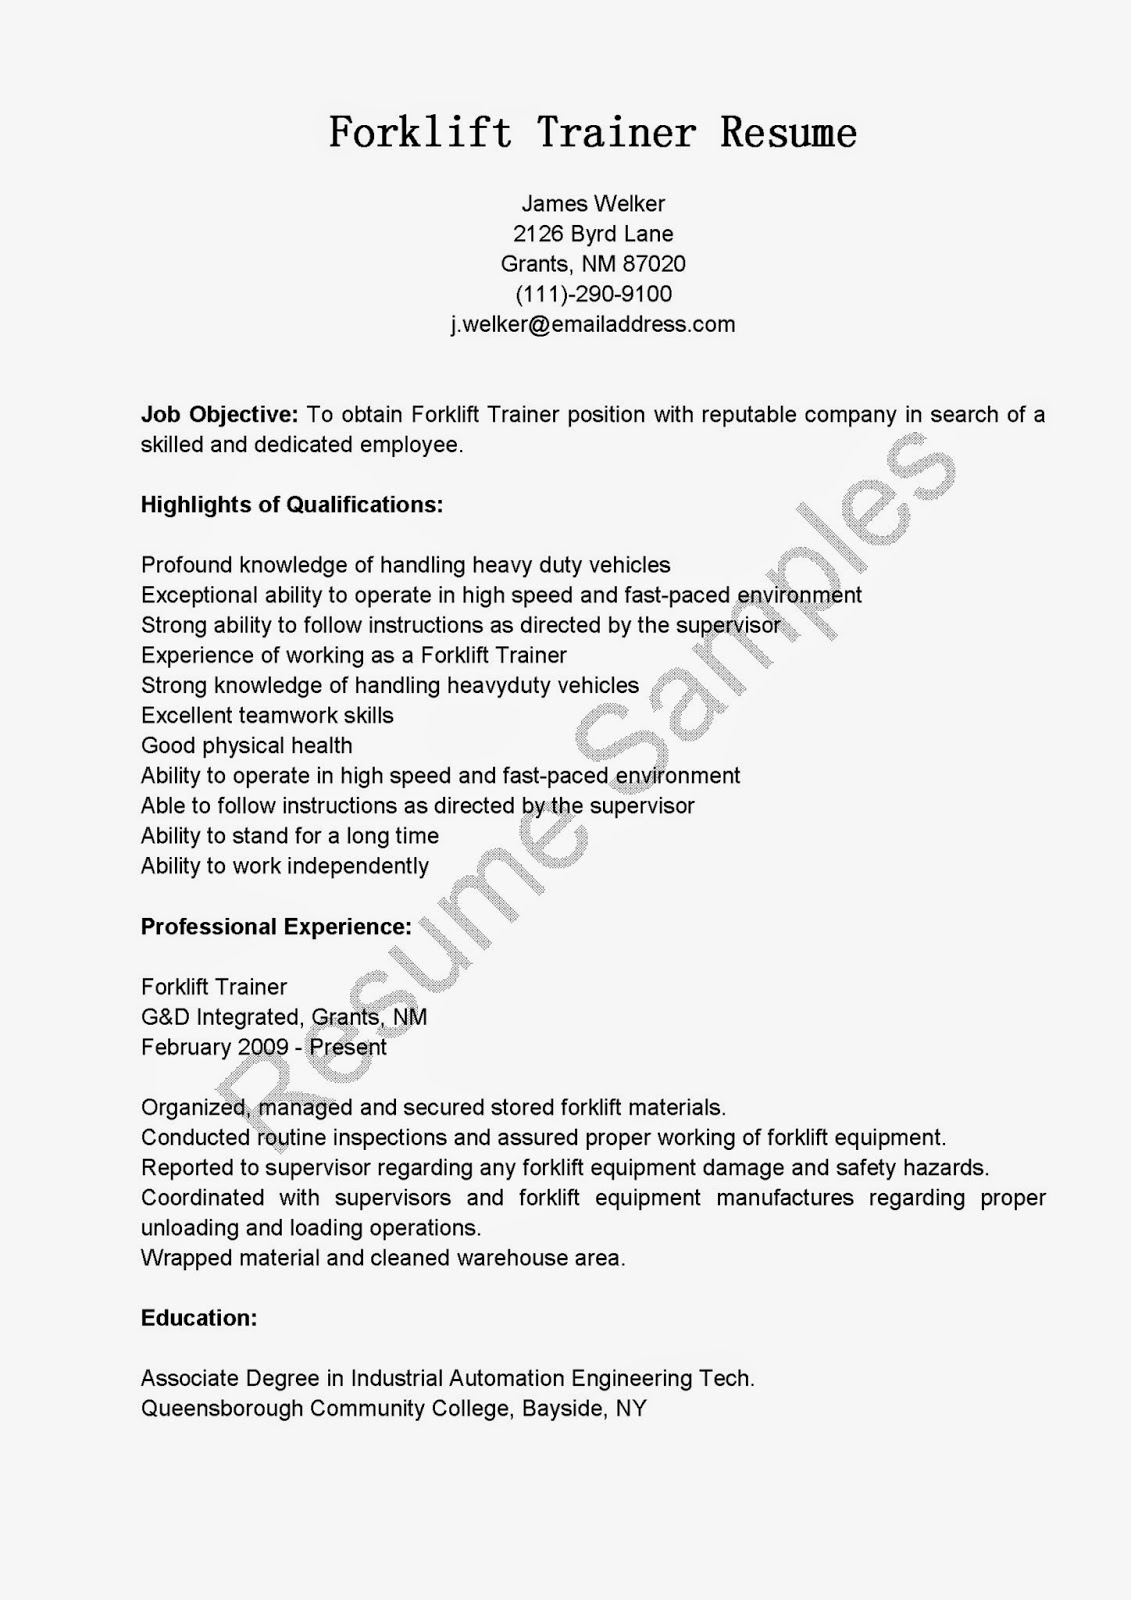 forklift resume sample resume samples forklift trainer sample driver - Forklift Resume Sample